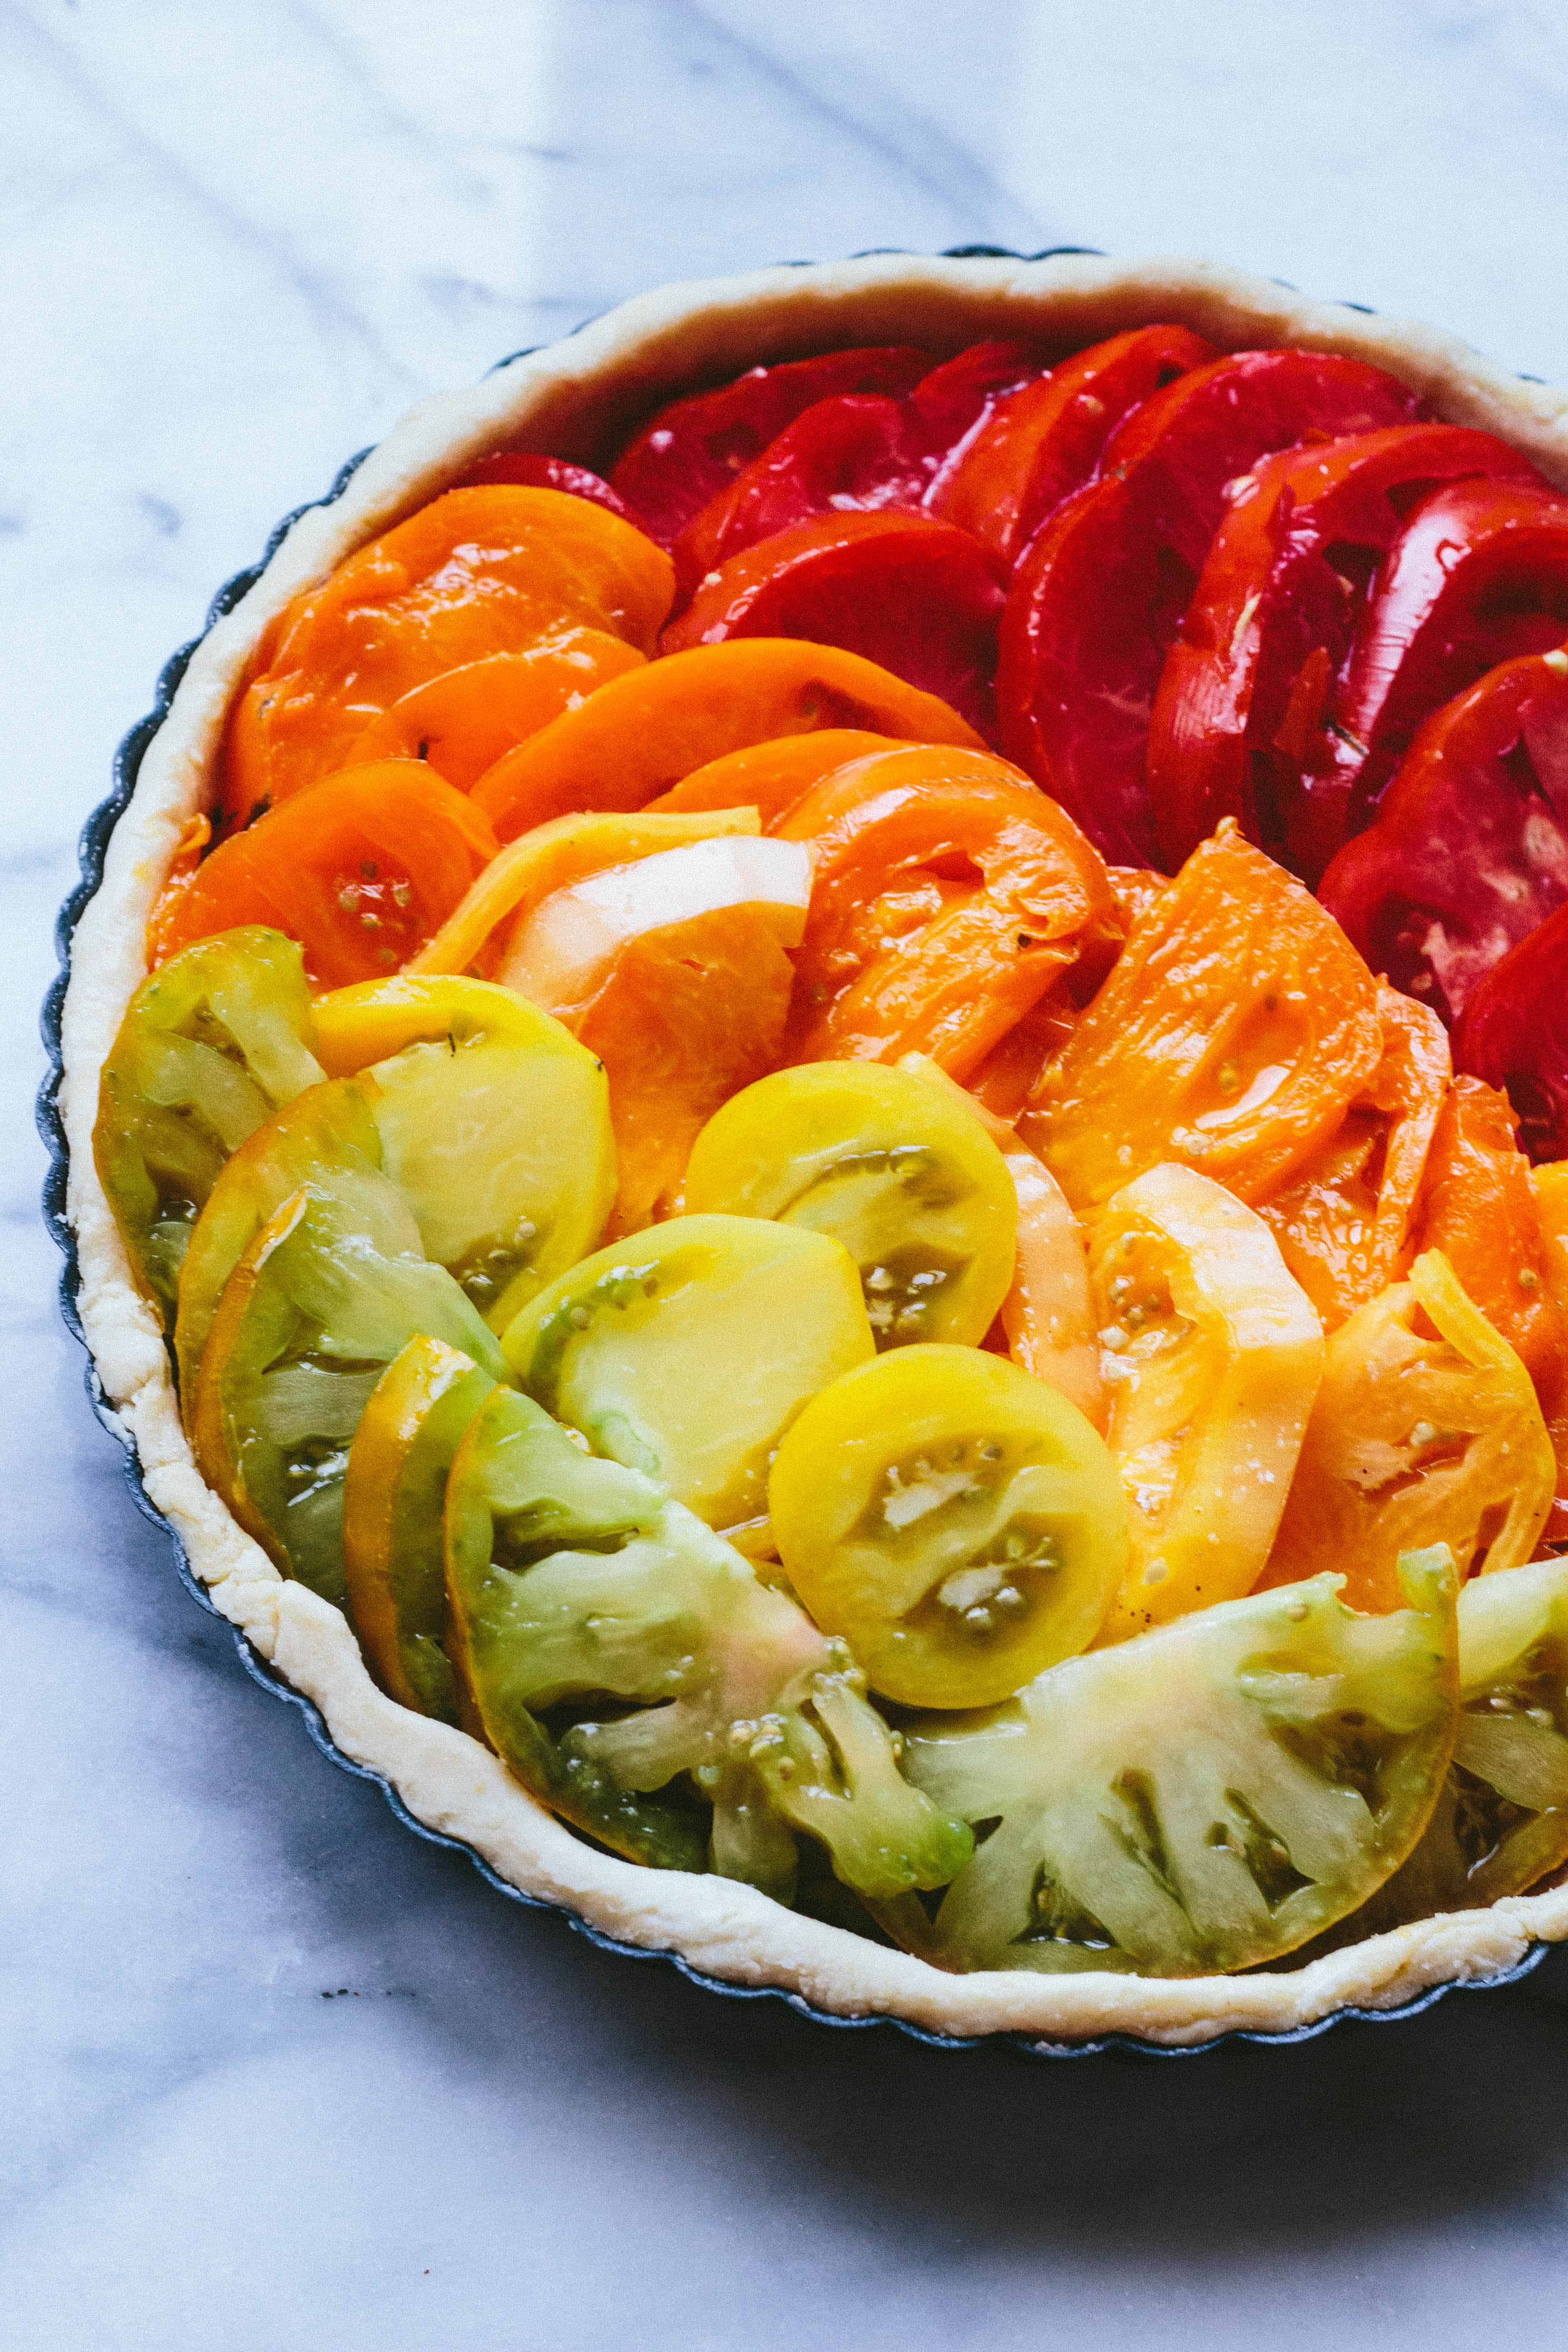 FRENCH TOMATO + GOAT CHEESE TART   The best recipe for French tomato + goat cheese tart. Easy and insanely delicious! #easy #heirloom #tomato #recipe #summer #French   ColeyCooks.com